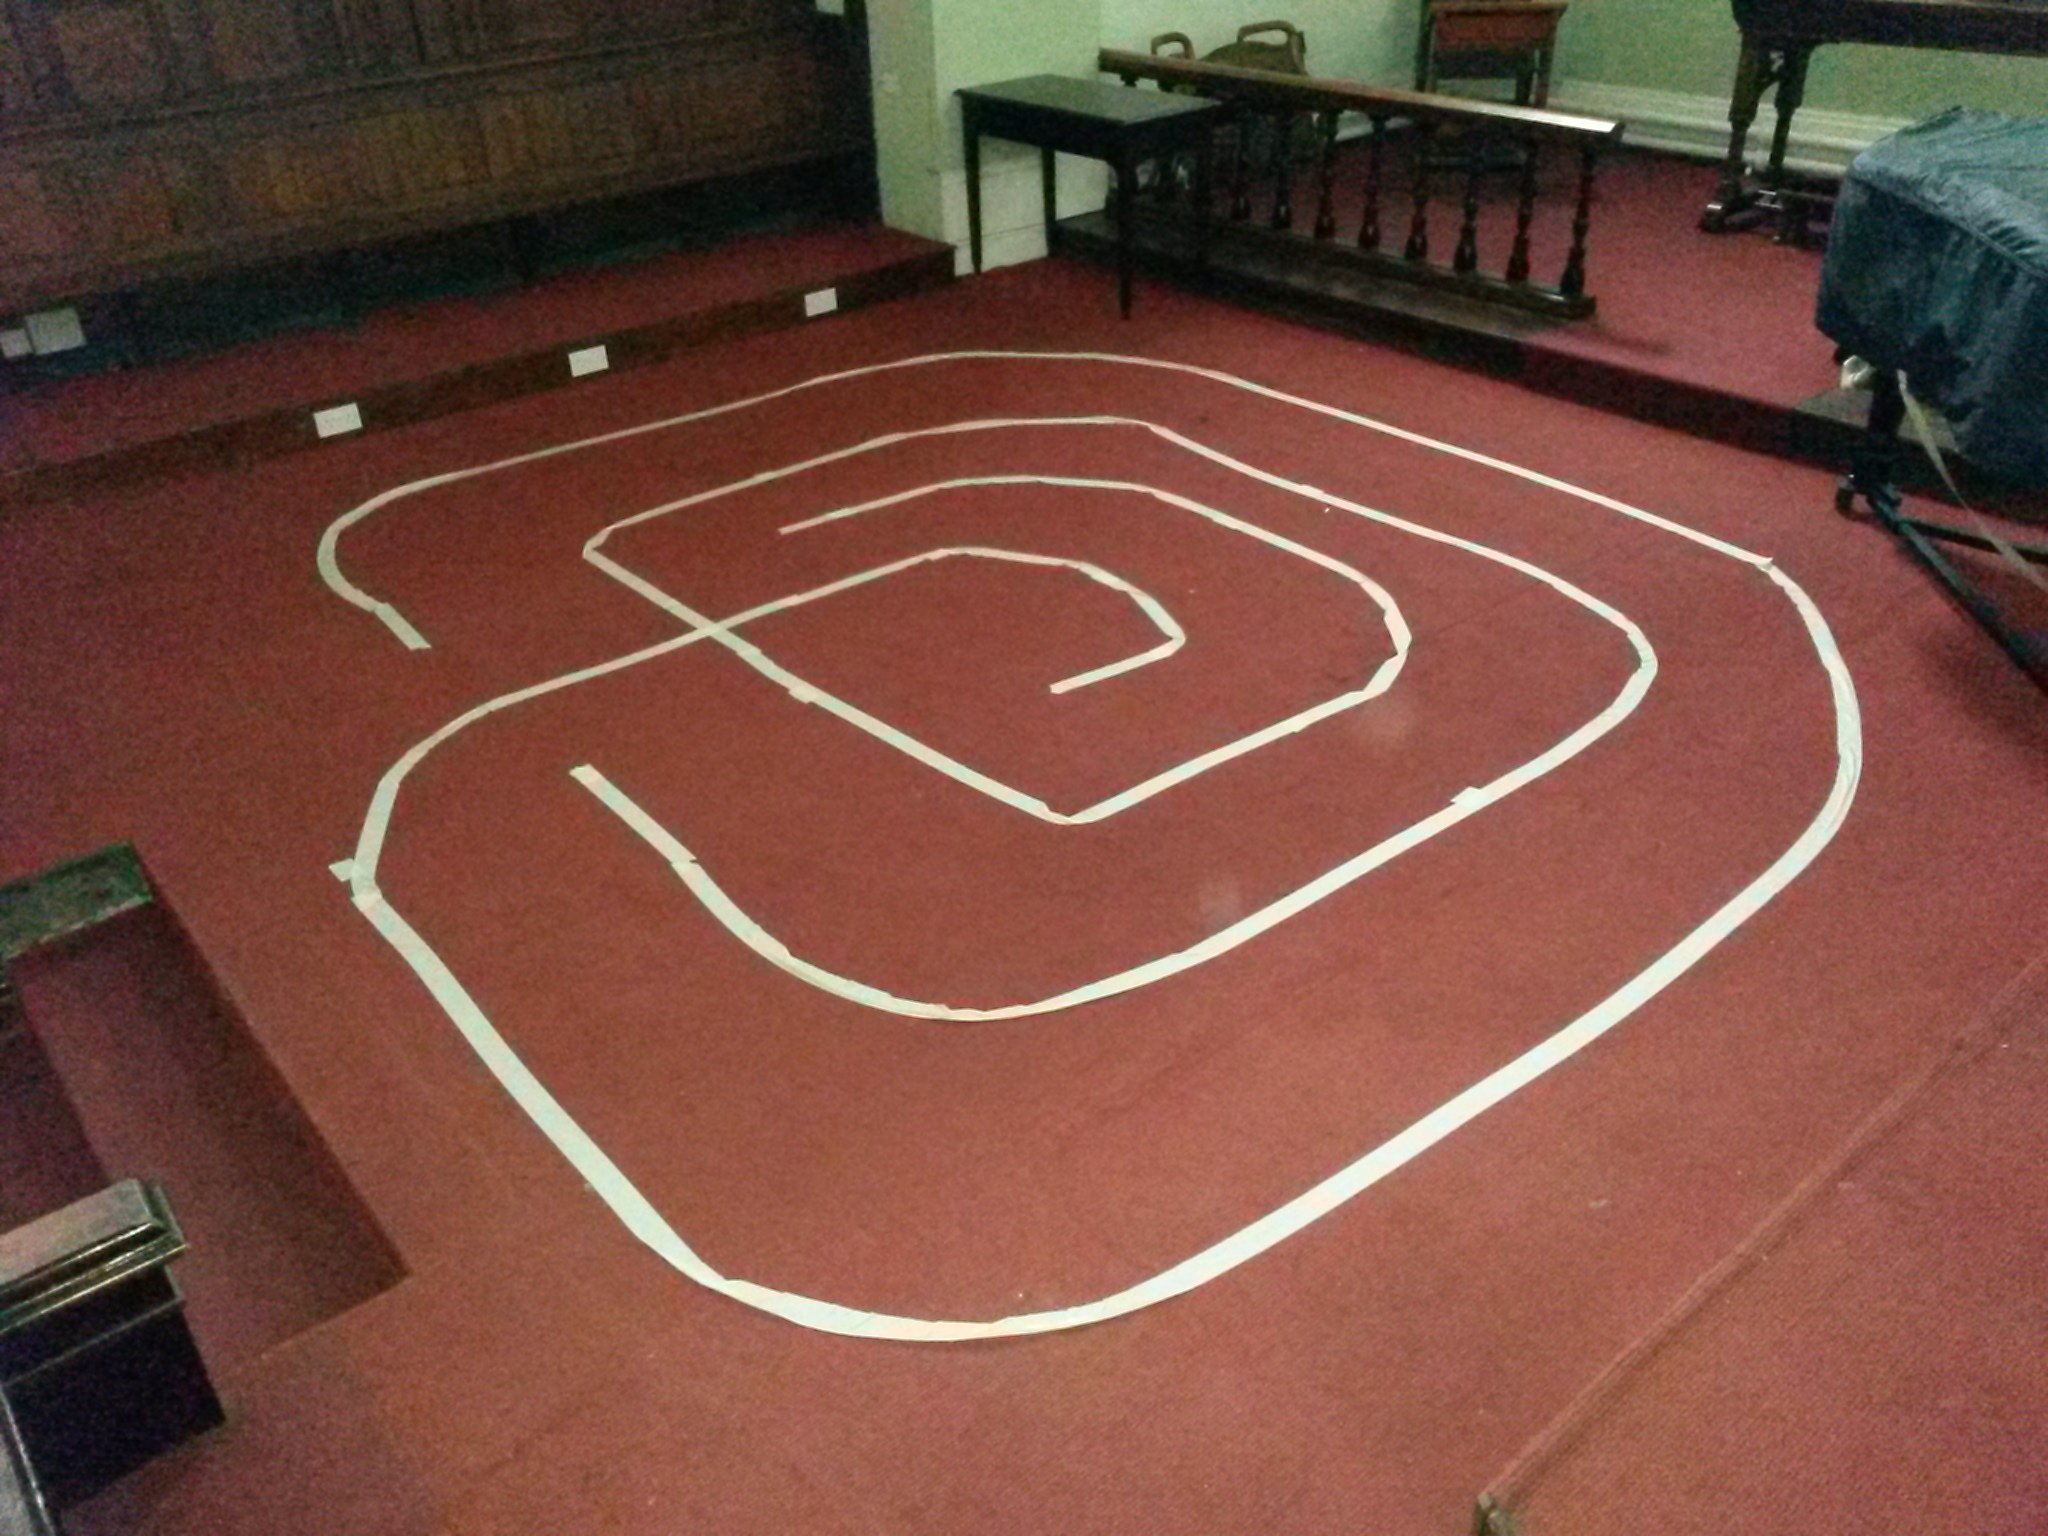 A temporary labyrinth in our sanctuary